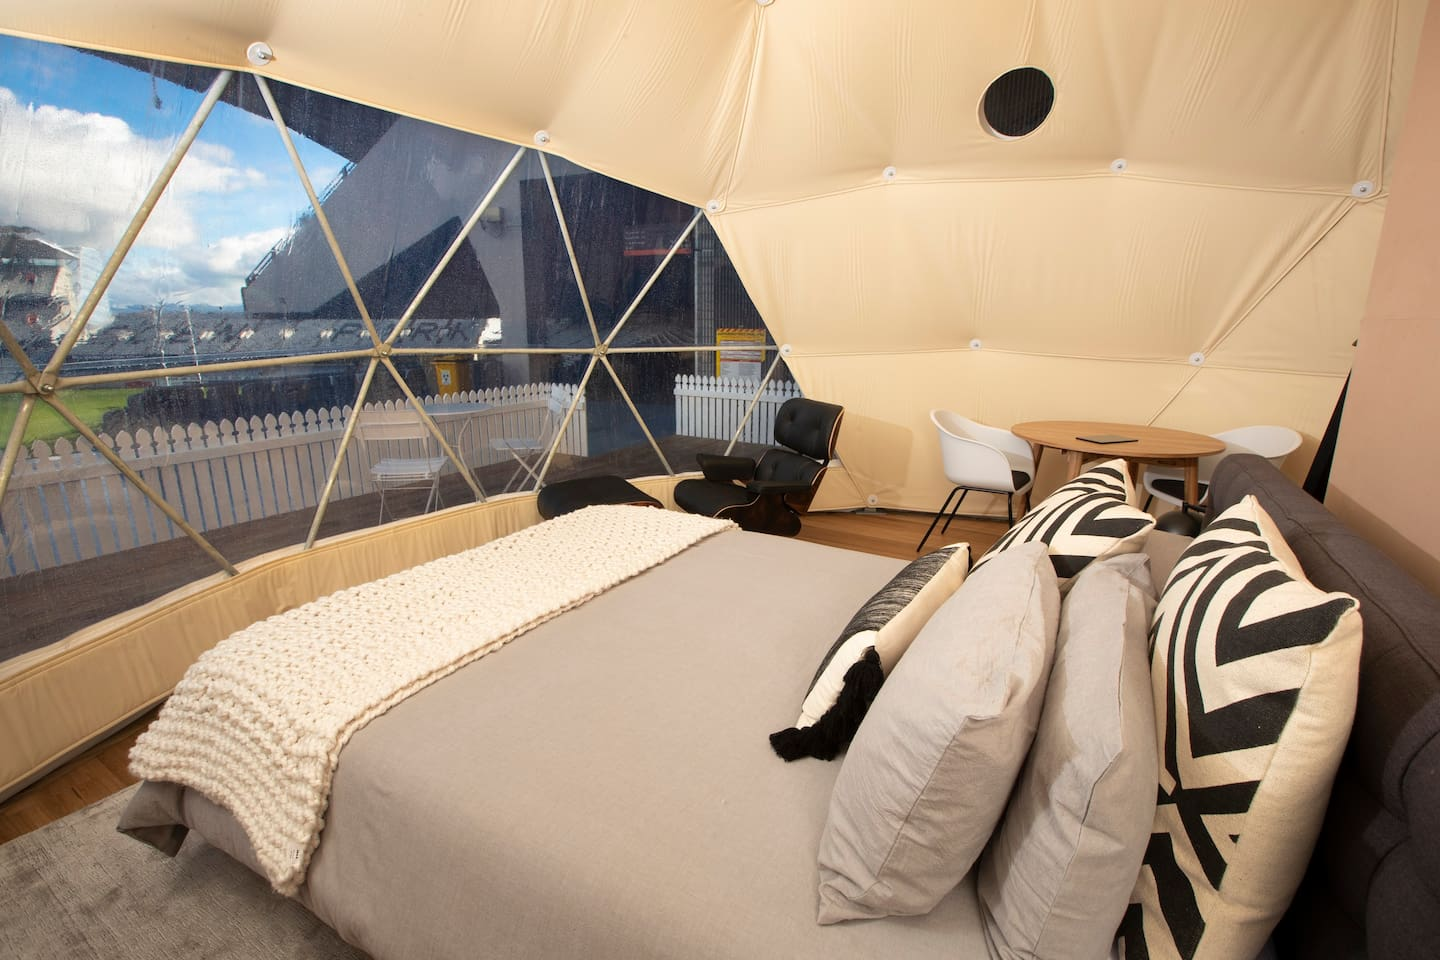 Domes feature premium Nood furnishings and Samsung appliances